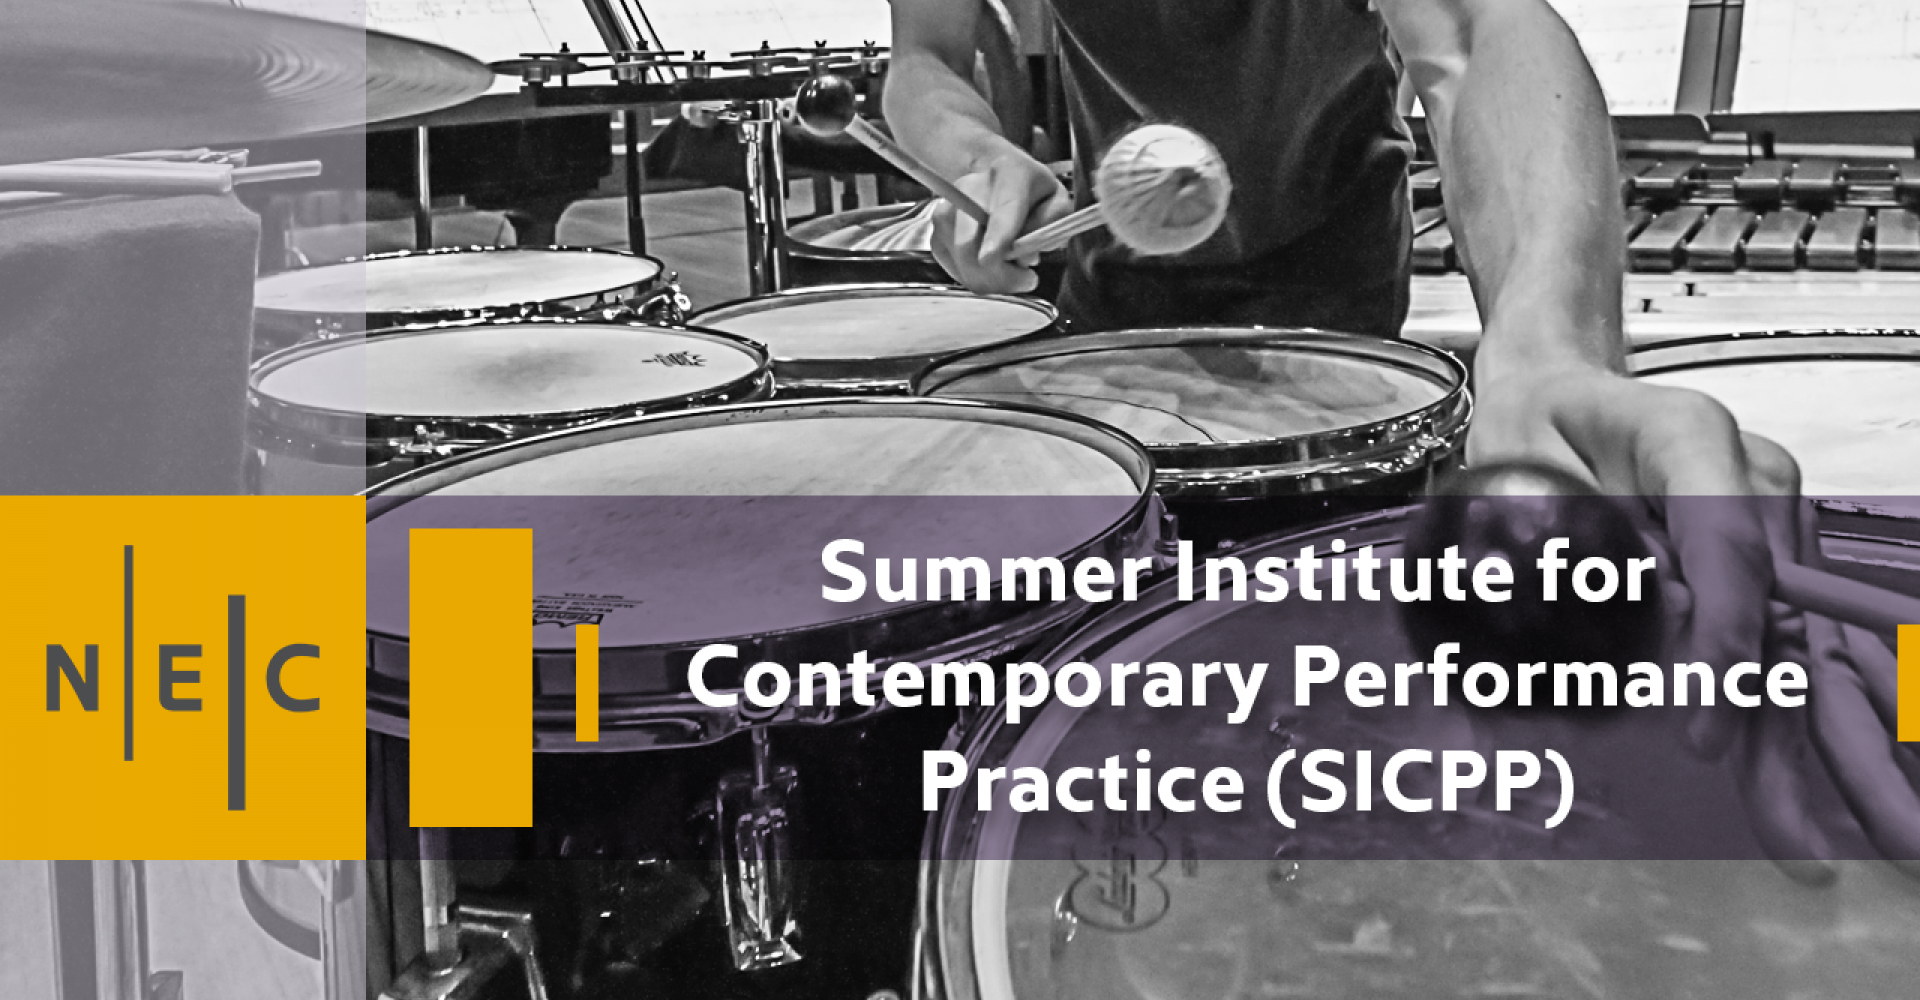 Summer Institute for Contemporary Performance Practice video